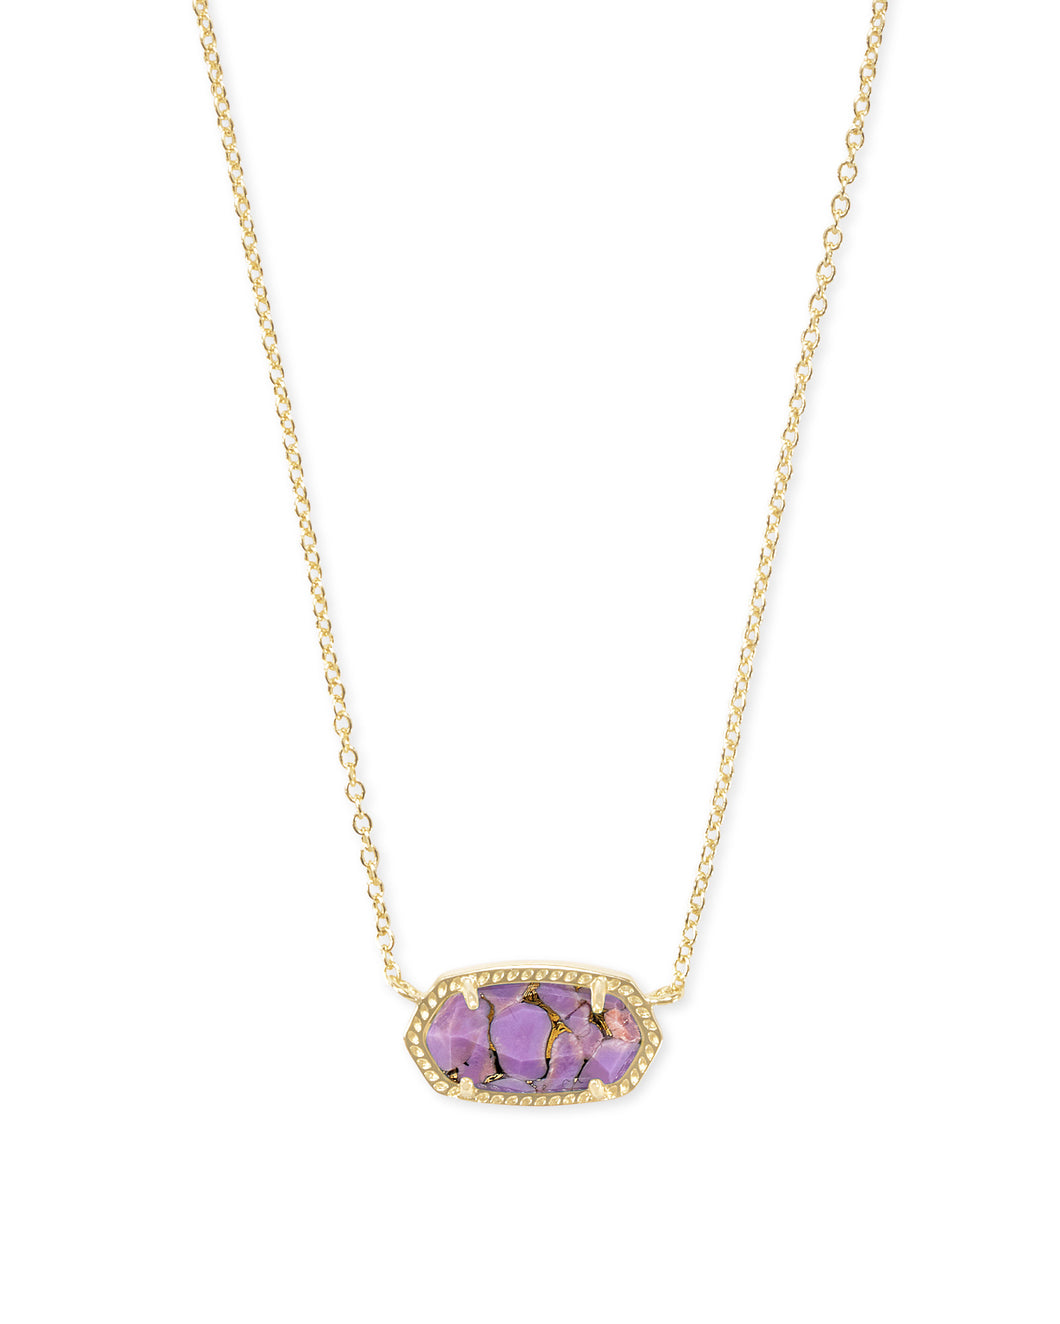 Kendra Scott Elisa Gold Pendant Necklace in Lilac